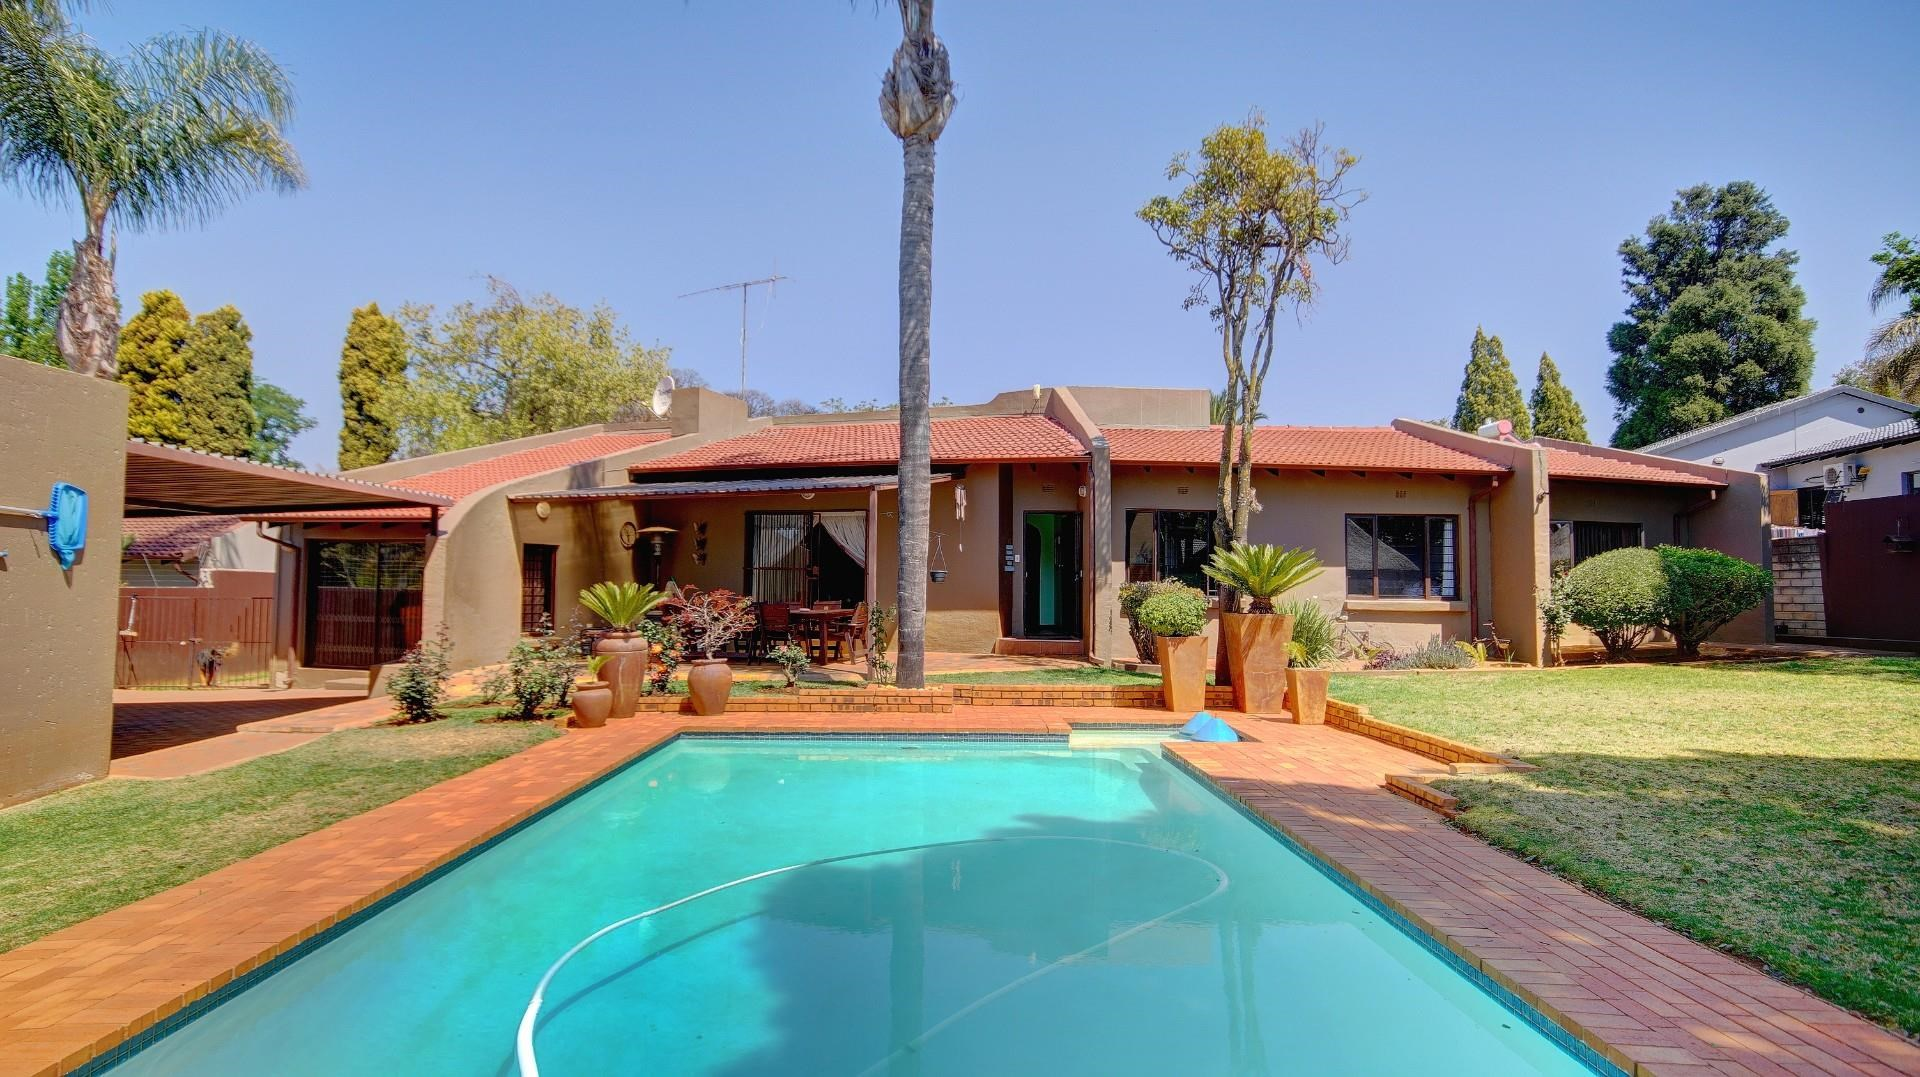 3 Bedroom House for Sale in Weltevreden Park